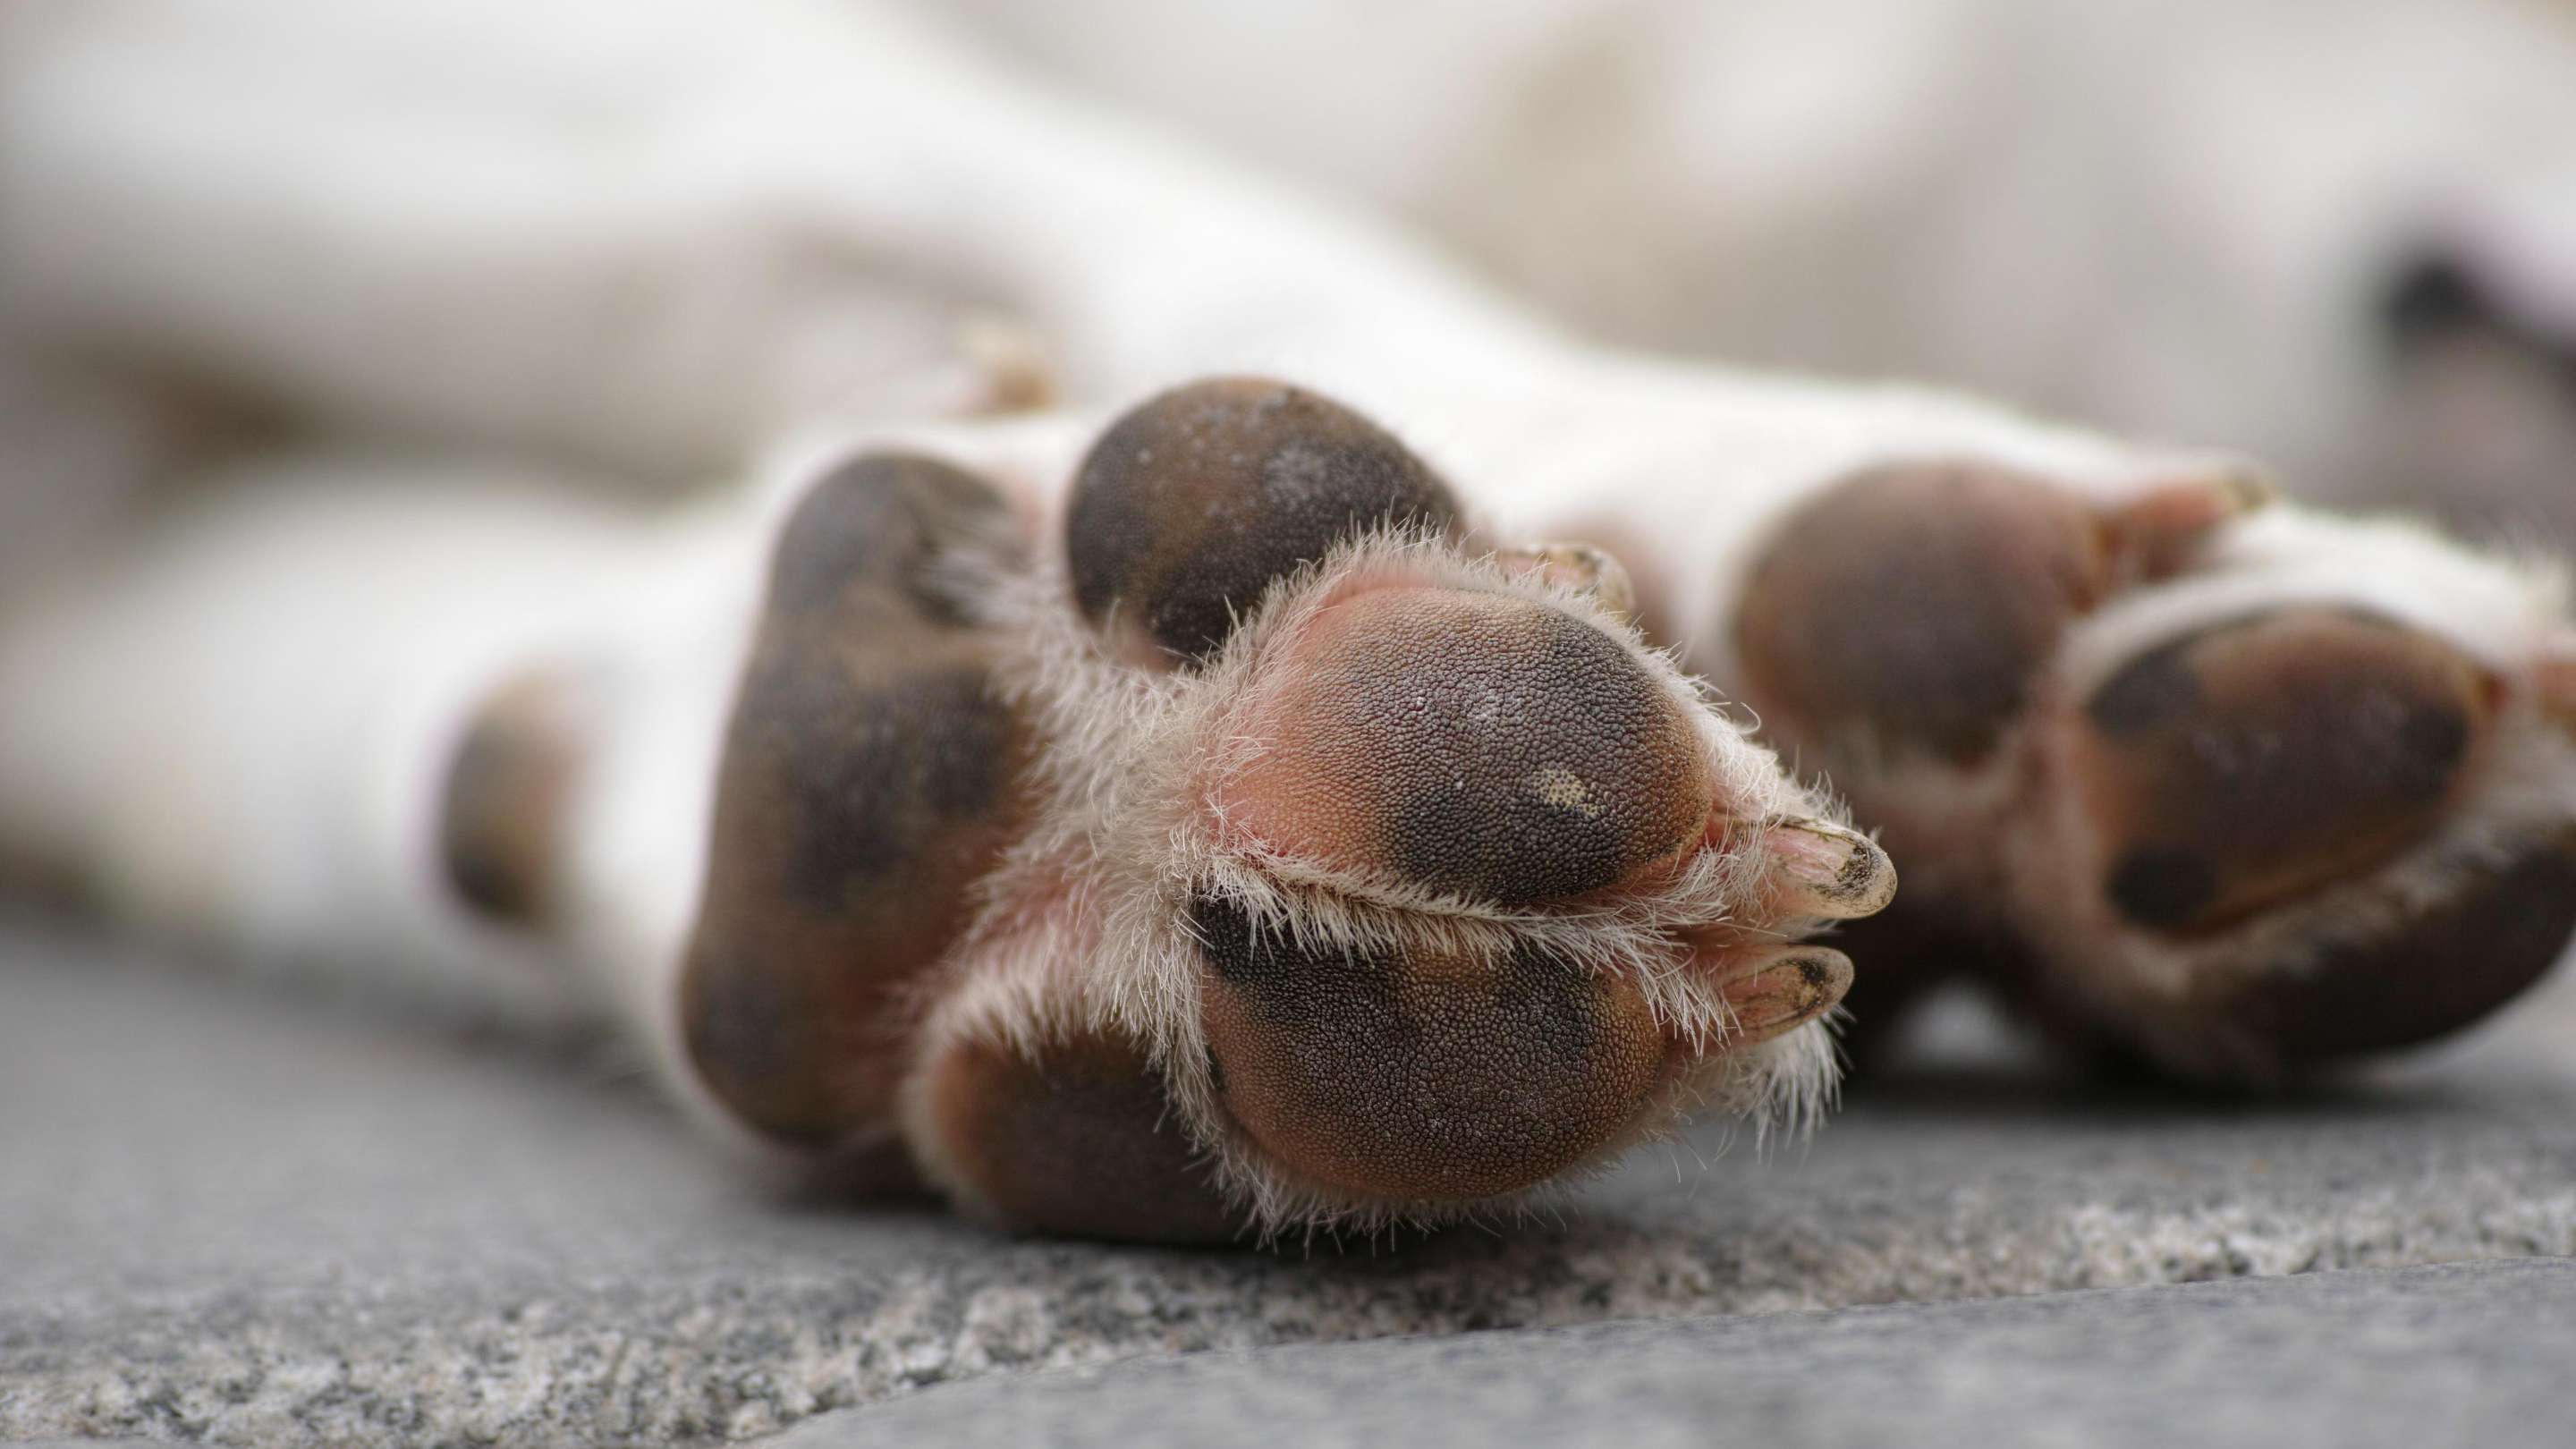 The underside of a dog's paw